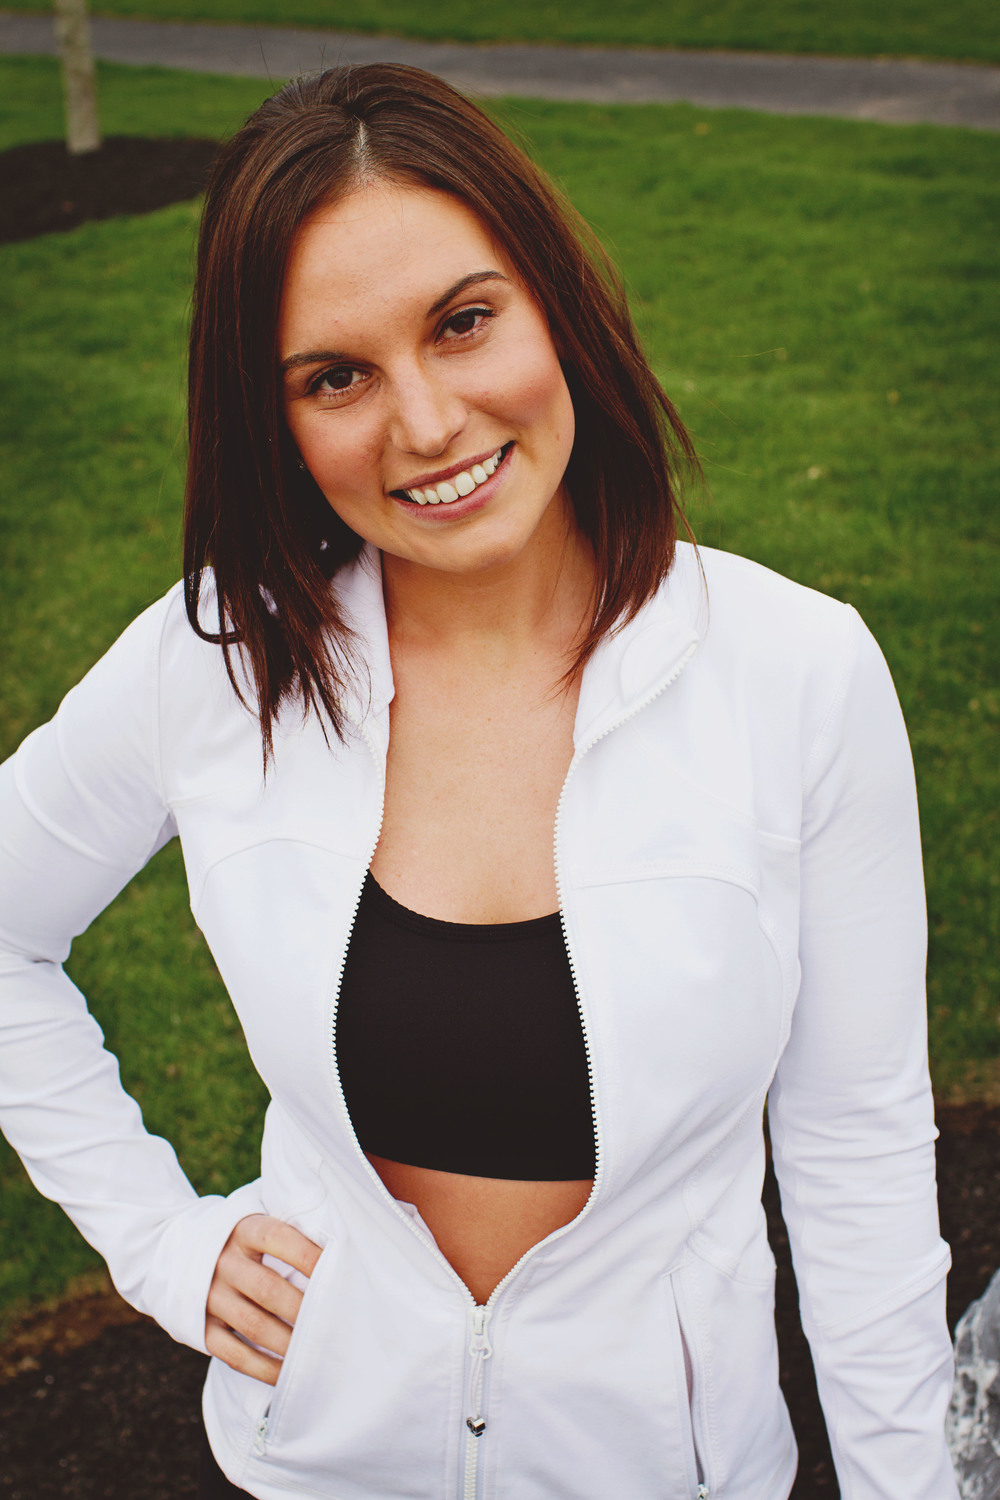 "Brittany Holtz is a 200RYT, NASM-CPT, and the founder of STUDIO B POWER YOGA.  She graduated from Lebanon Valley College in 2010 with a Bachelor's in Political Science and currently serves as the Tour Director at the Pennsylvania Governor's Residence.  Growing up she was involved in gymnastics, cheerleading, soccer, and weightlifting.  She had often heard about the benefits of yoga, but like so many, assumed it would be ""too boring"" for her.  A friend finally convinced her to give it a try and after one class, she was hooked. Brittany realized immediately that yoga was much more than a good workout, but an empowering tool for change.  Yoga helped calm her mind, focus her energy, and empower her to leave a toxic and stressful job. Brittany is so passionate about sharing the benefits of yoga, that she decided to take a leap of faith and open a studio of her own.  She lives in Mt. Joy with her husband, Josh, and two Pit Bull's, Champ and Livy. You can learn more about Brittany at www.brittanyholtz.com"